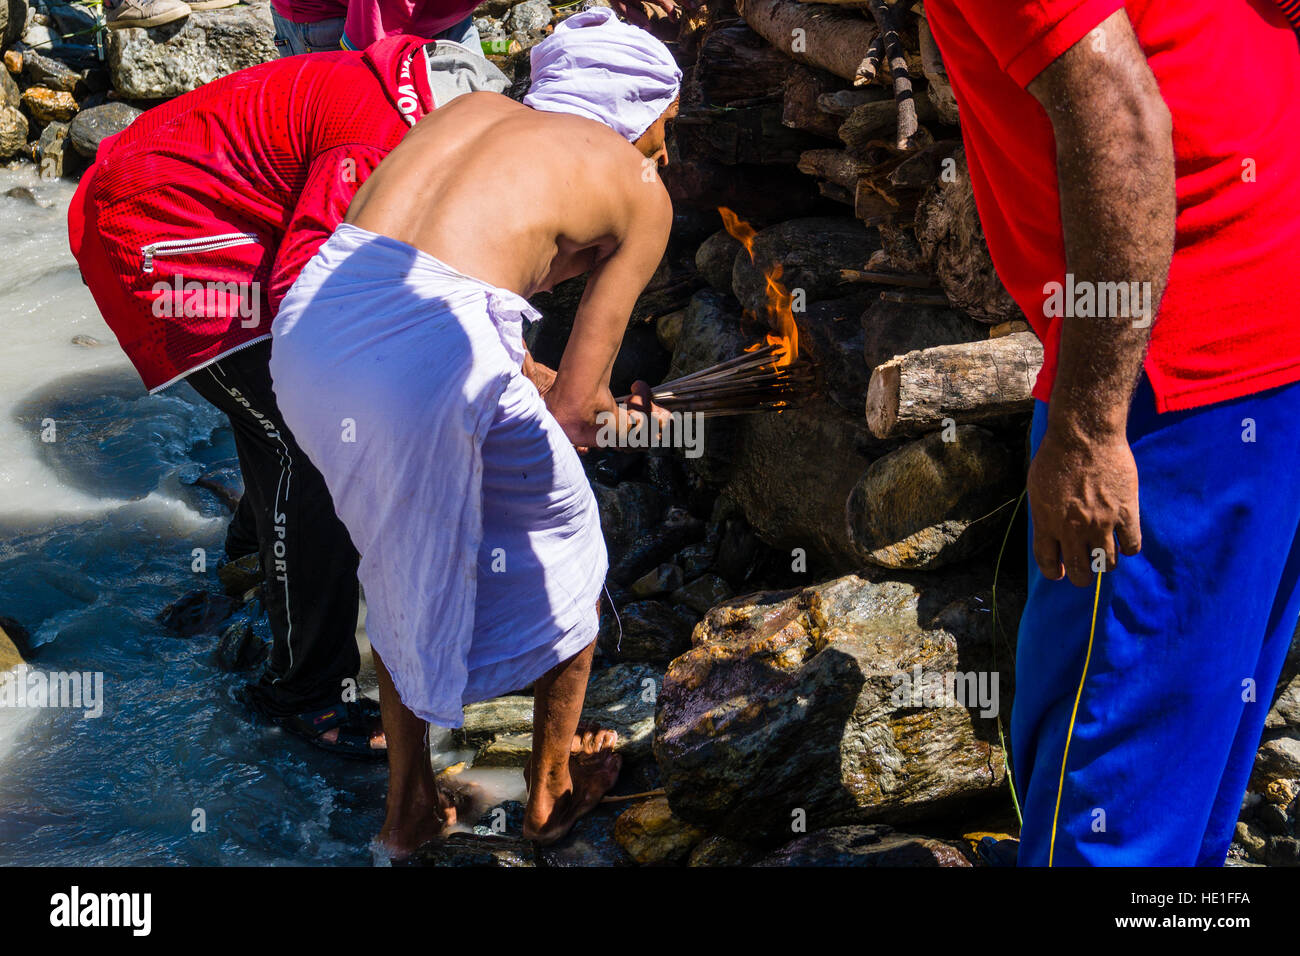 A man is lightning the fire at the funeral of a death body at the cremation ground on the bank of the river Kali - Stock Image